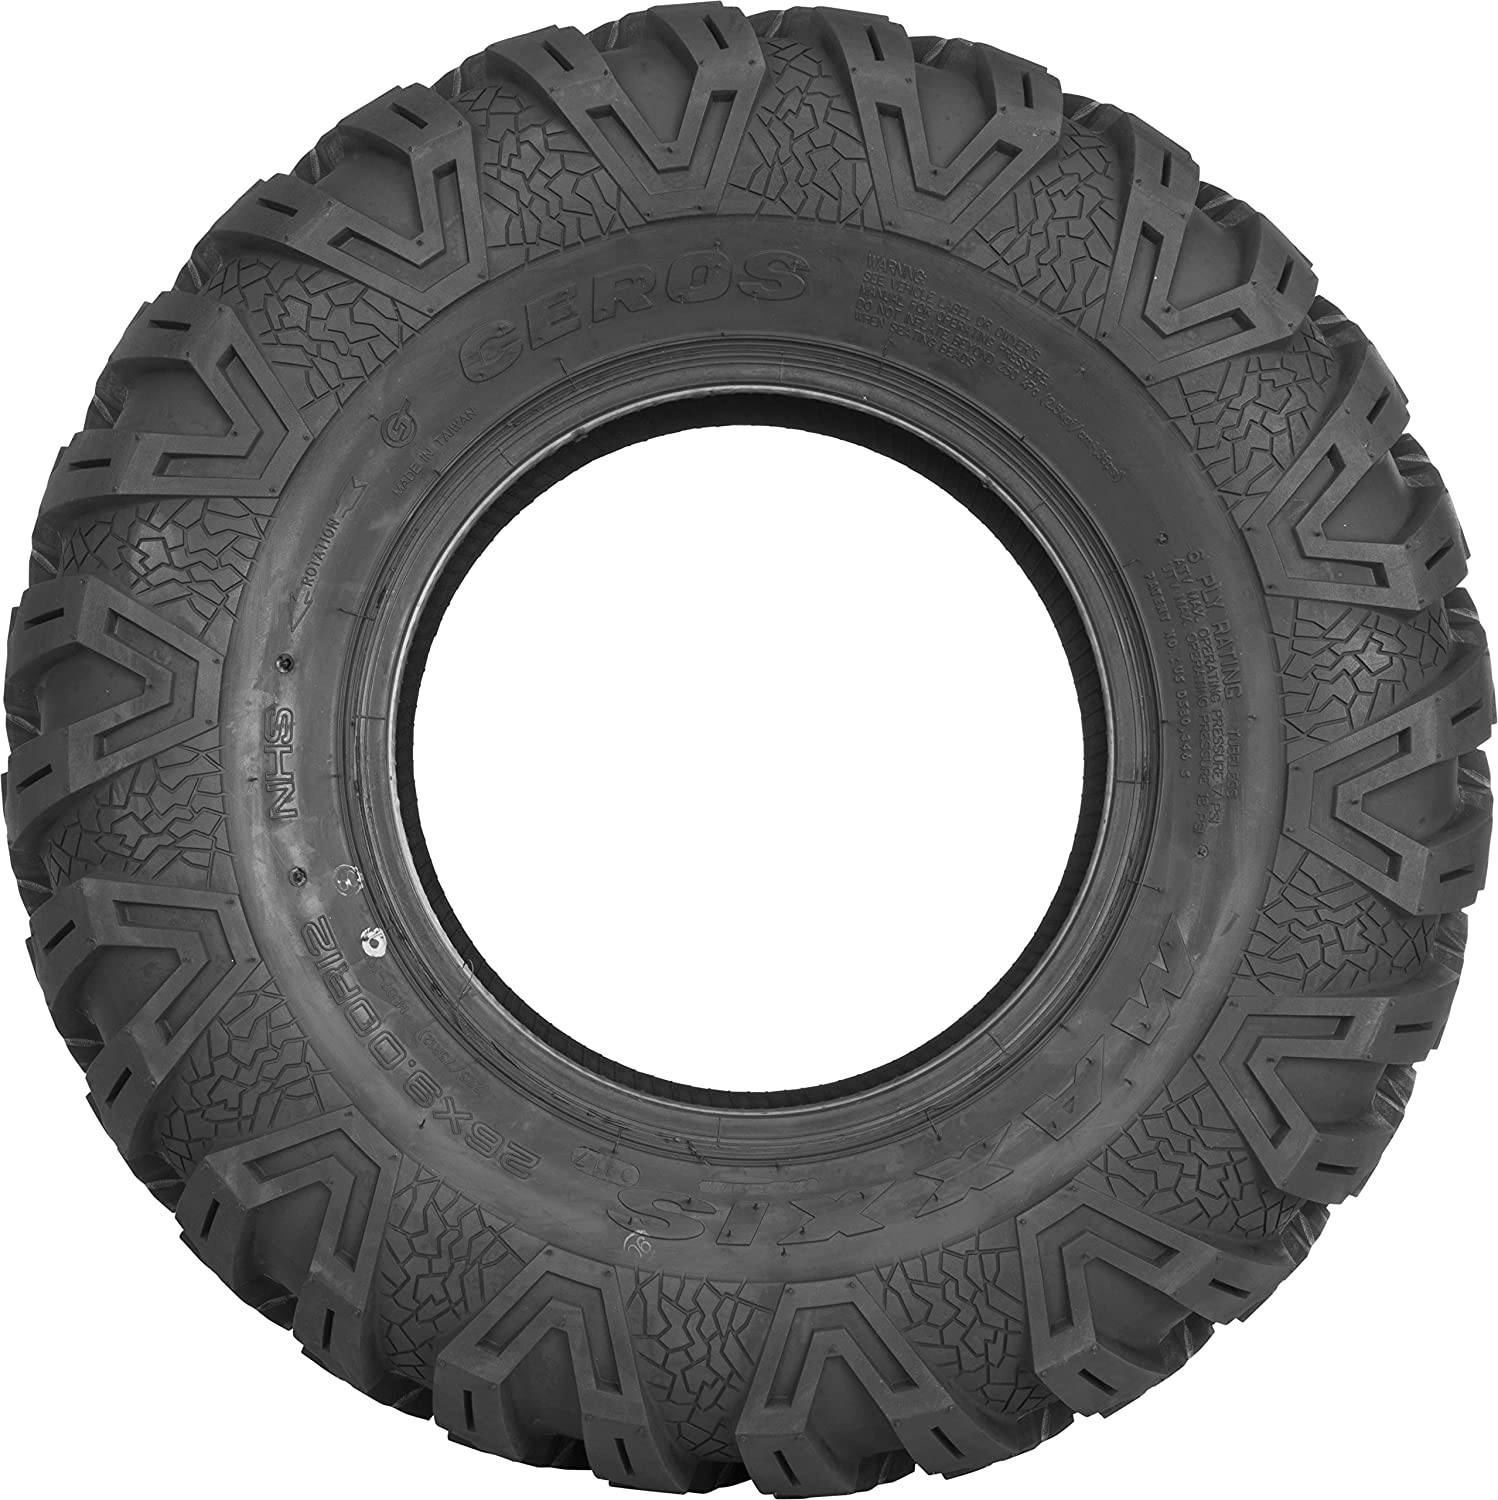 2 Tires 6 Ply Maxxis Ceros Front Tires 26x9R-14 TM00096100